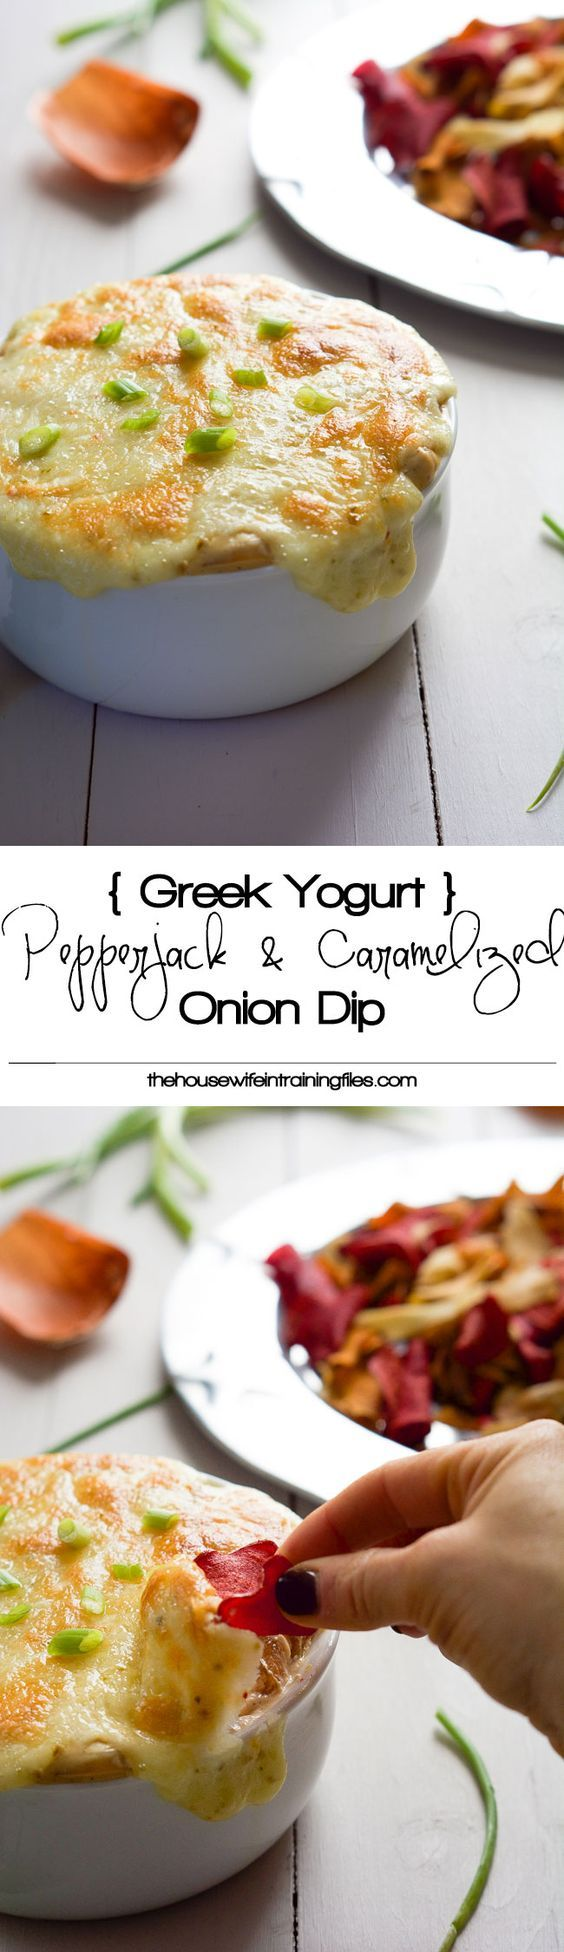 {Greek Yogurt} Pepperjack & Caramelized Onion Dip is an upgrade to the classic dip with spicy pepperjack cheese and made skinny with a greek yogurt base